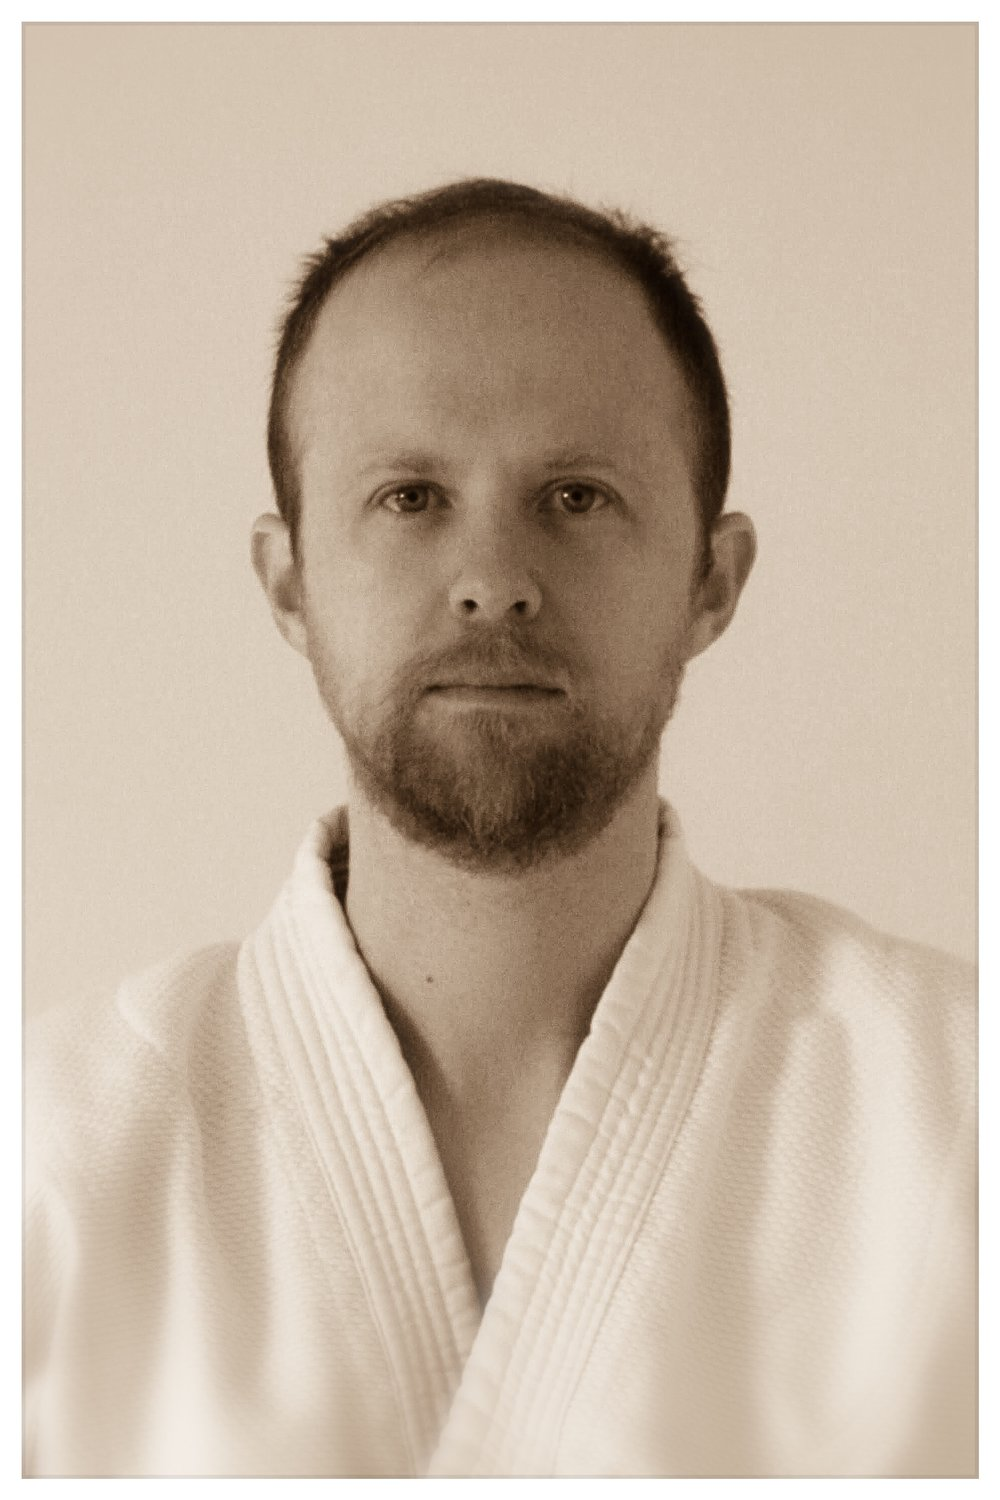 Alaric Everett Sensei   1st Dan, Qualified Teacher  Exeter/Isshinkan